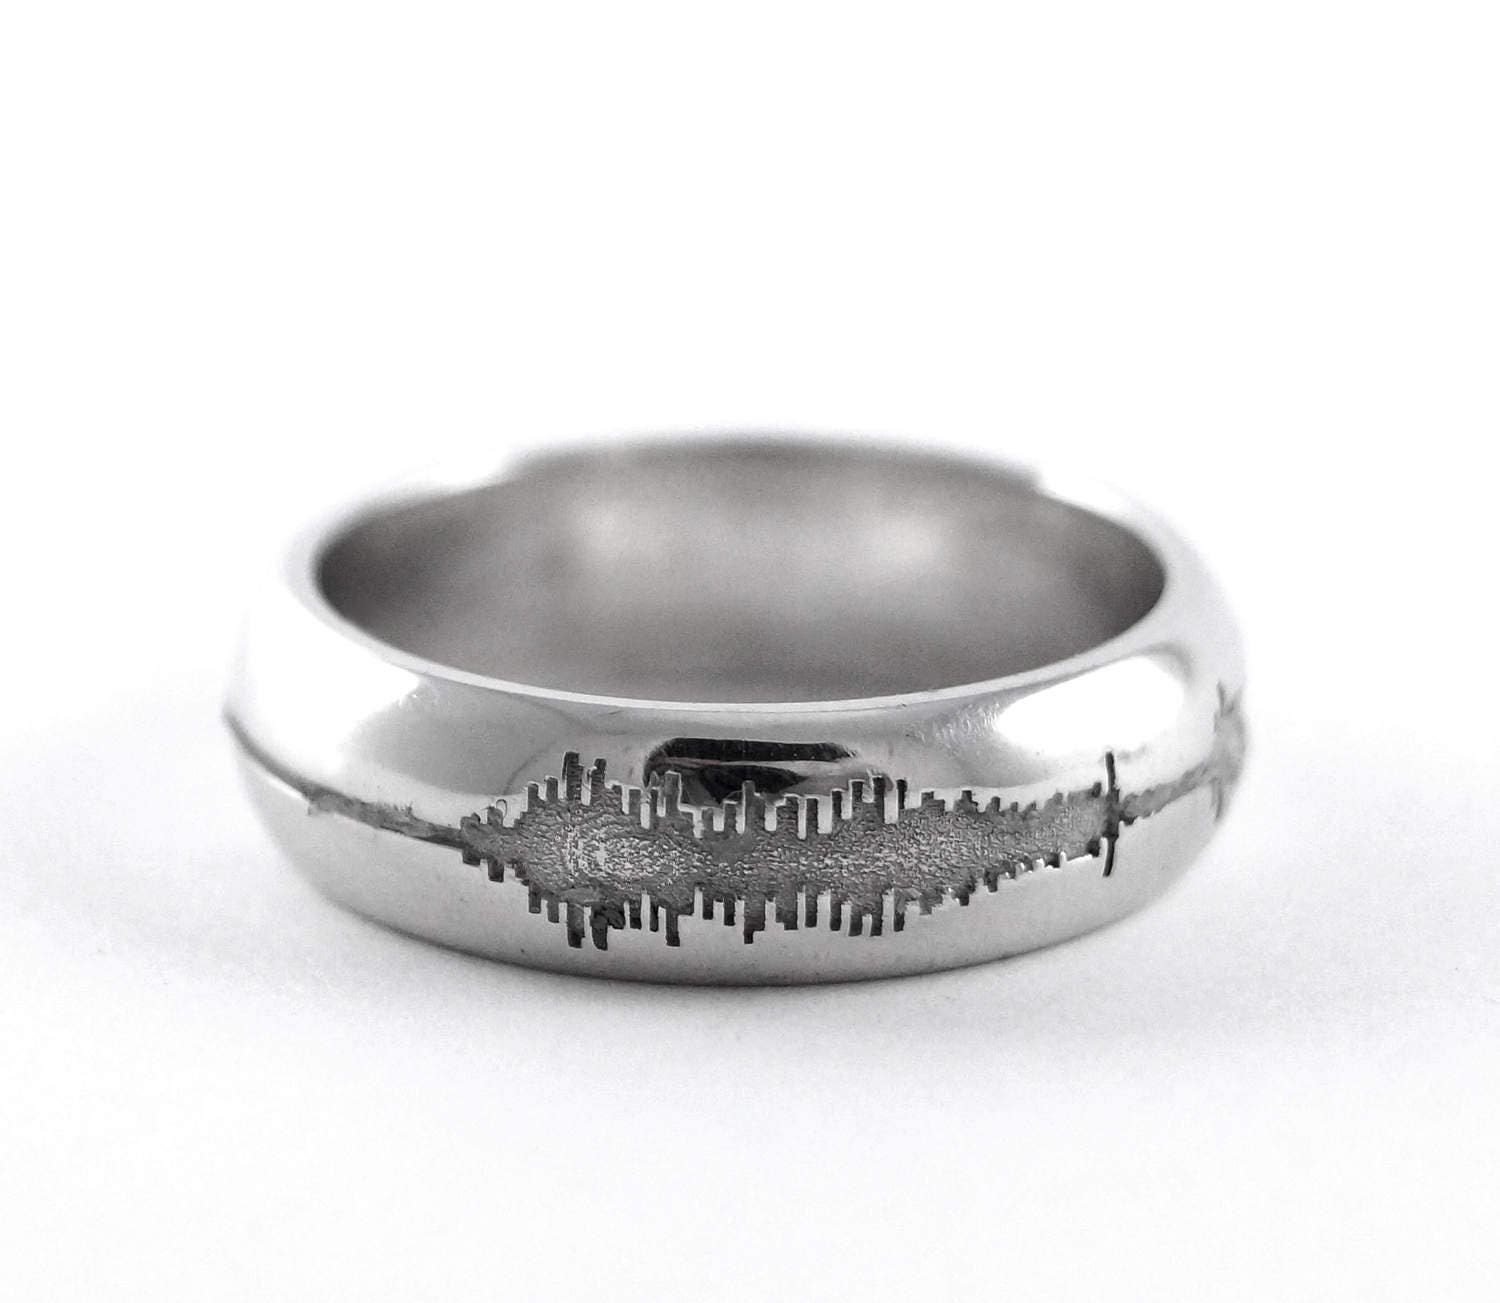 rickson engraved chic sound love sounds geek listing jewellery il nerd wave ring rings hand geekery personalized music of fullxfull